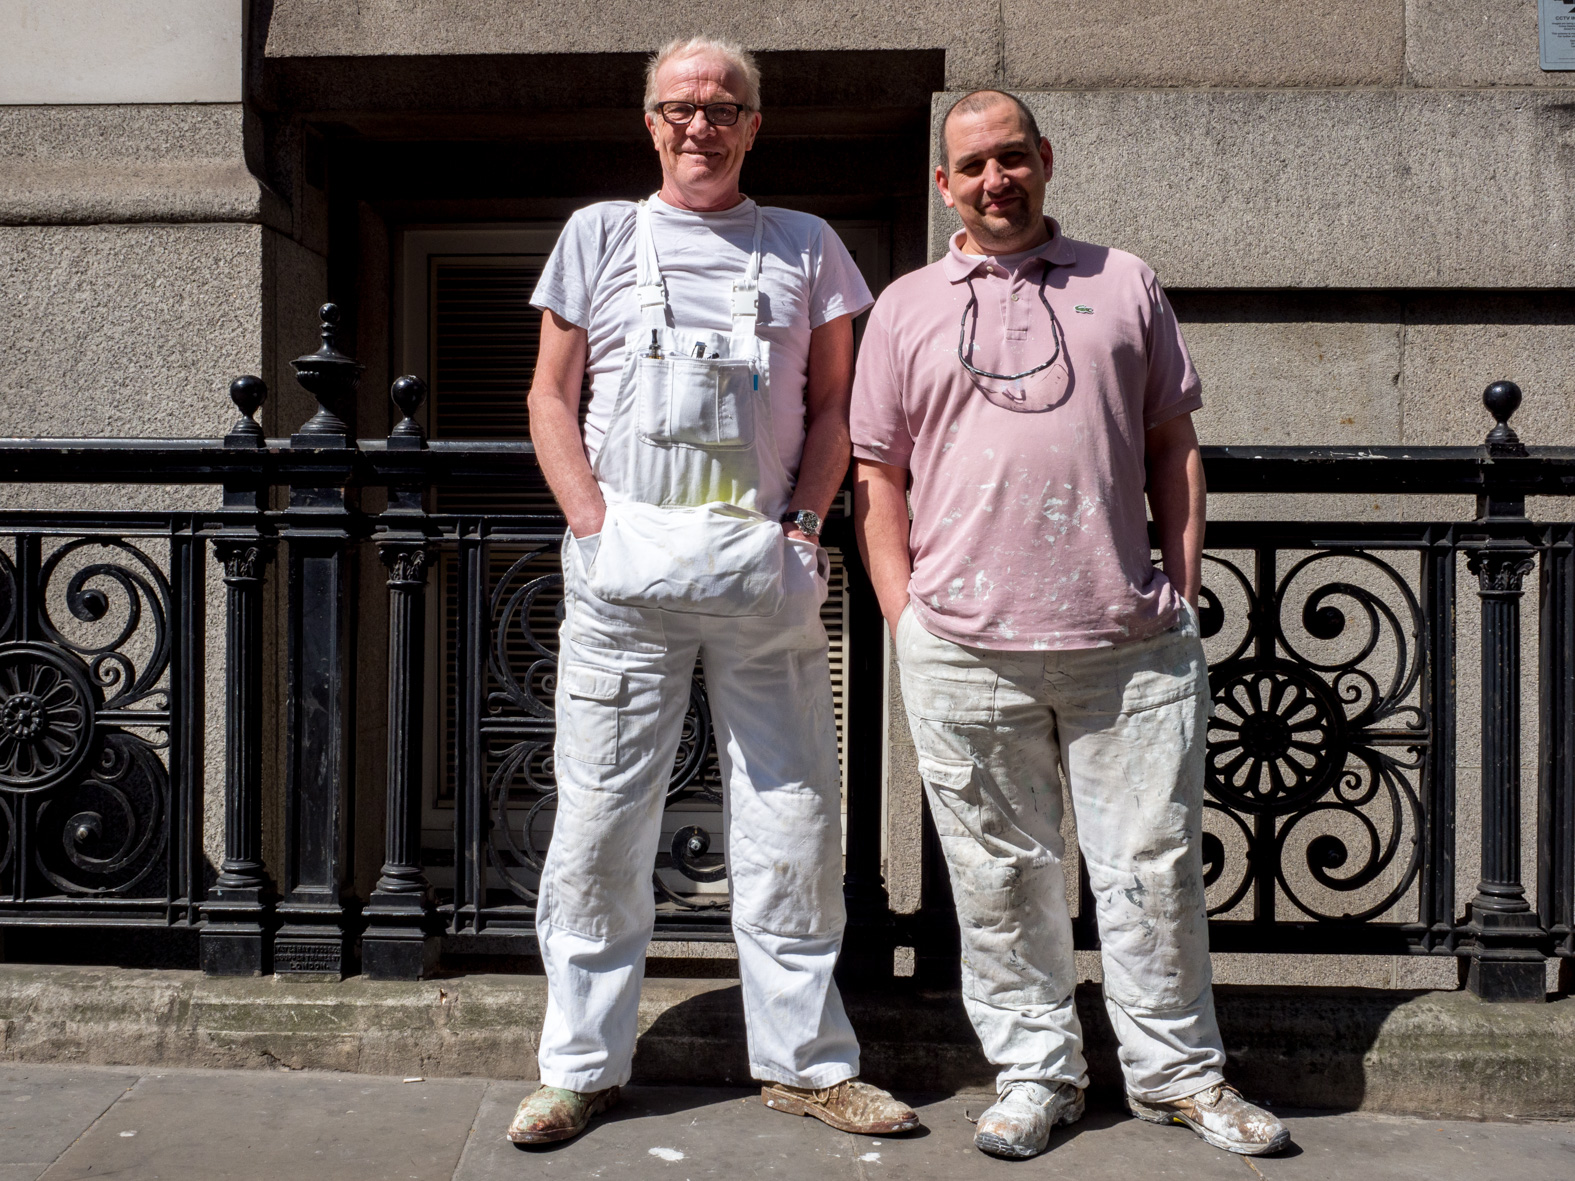 67 year old Bill (left) and Spencer (43), both painters from London, aren't worried about their jobs. St Martin's-le-Grand, London.